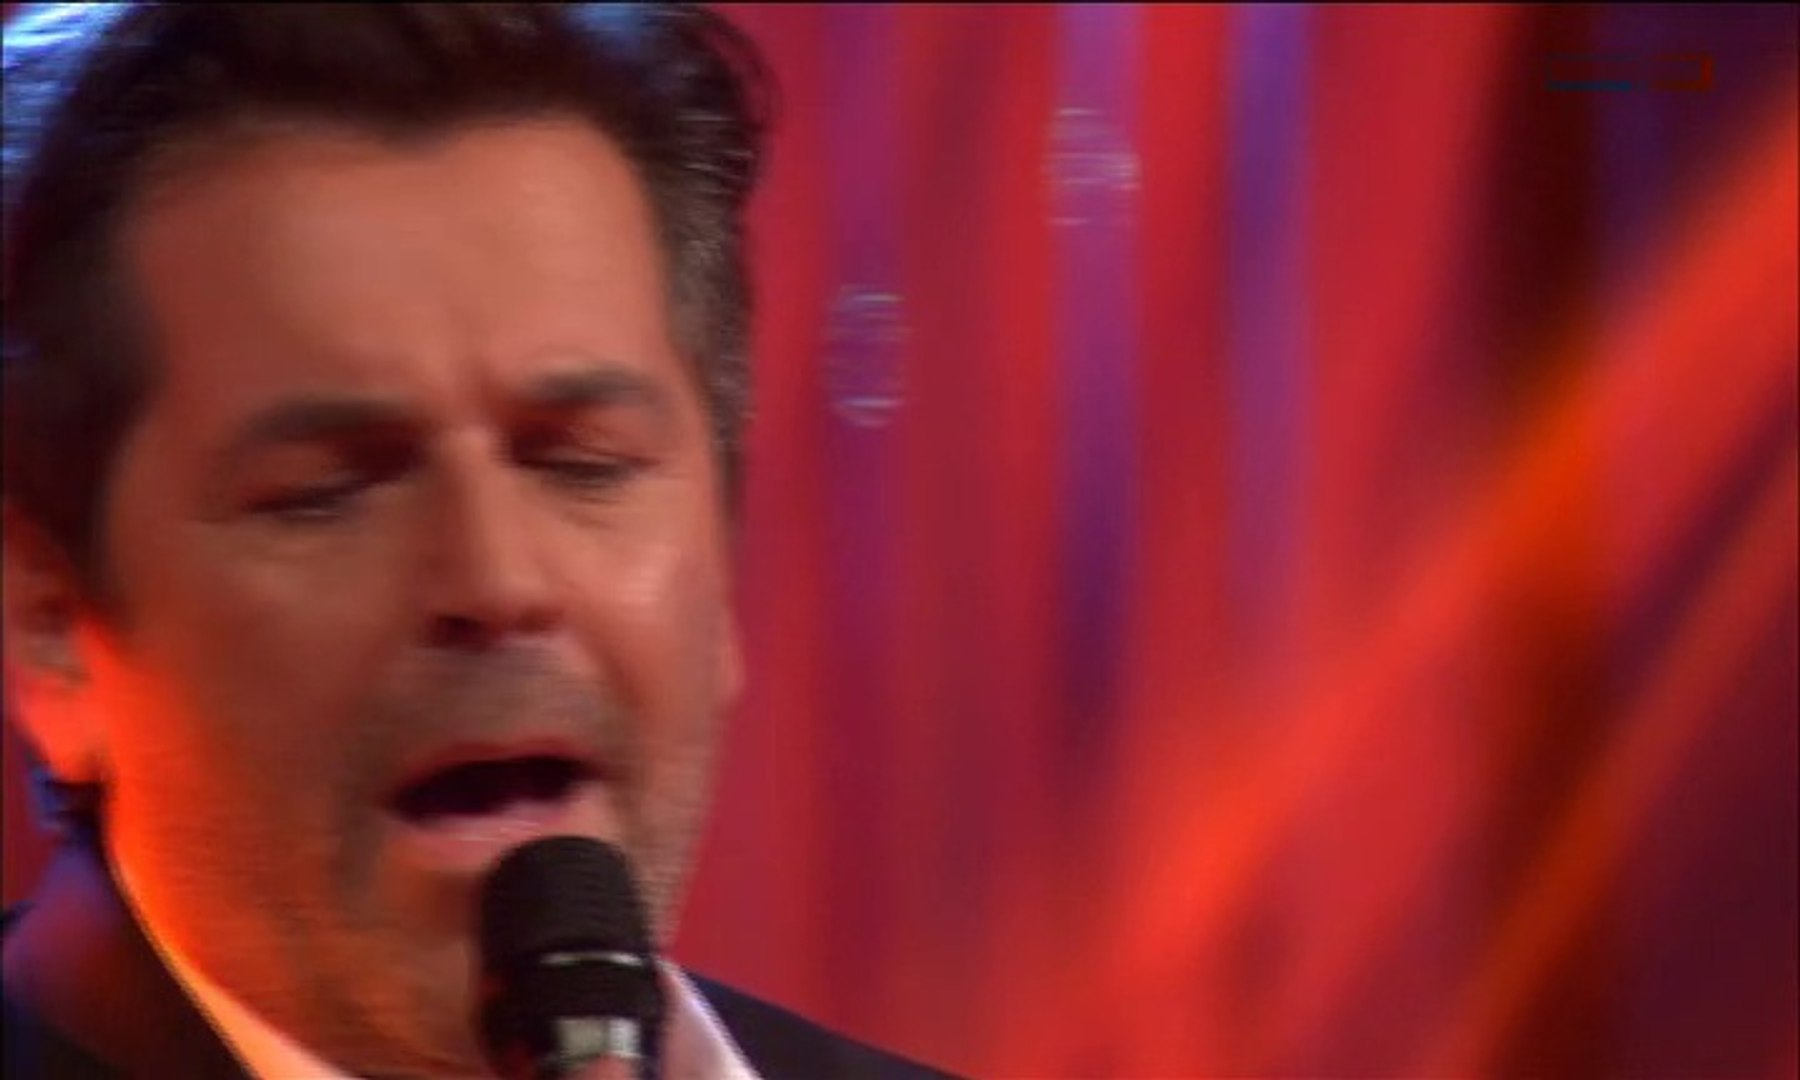 Thomas Anders - You're my heart, you're my soul 2015